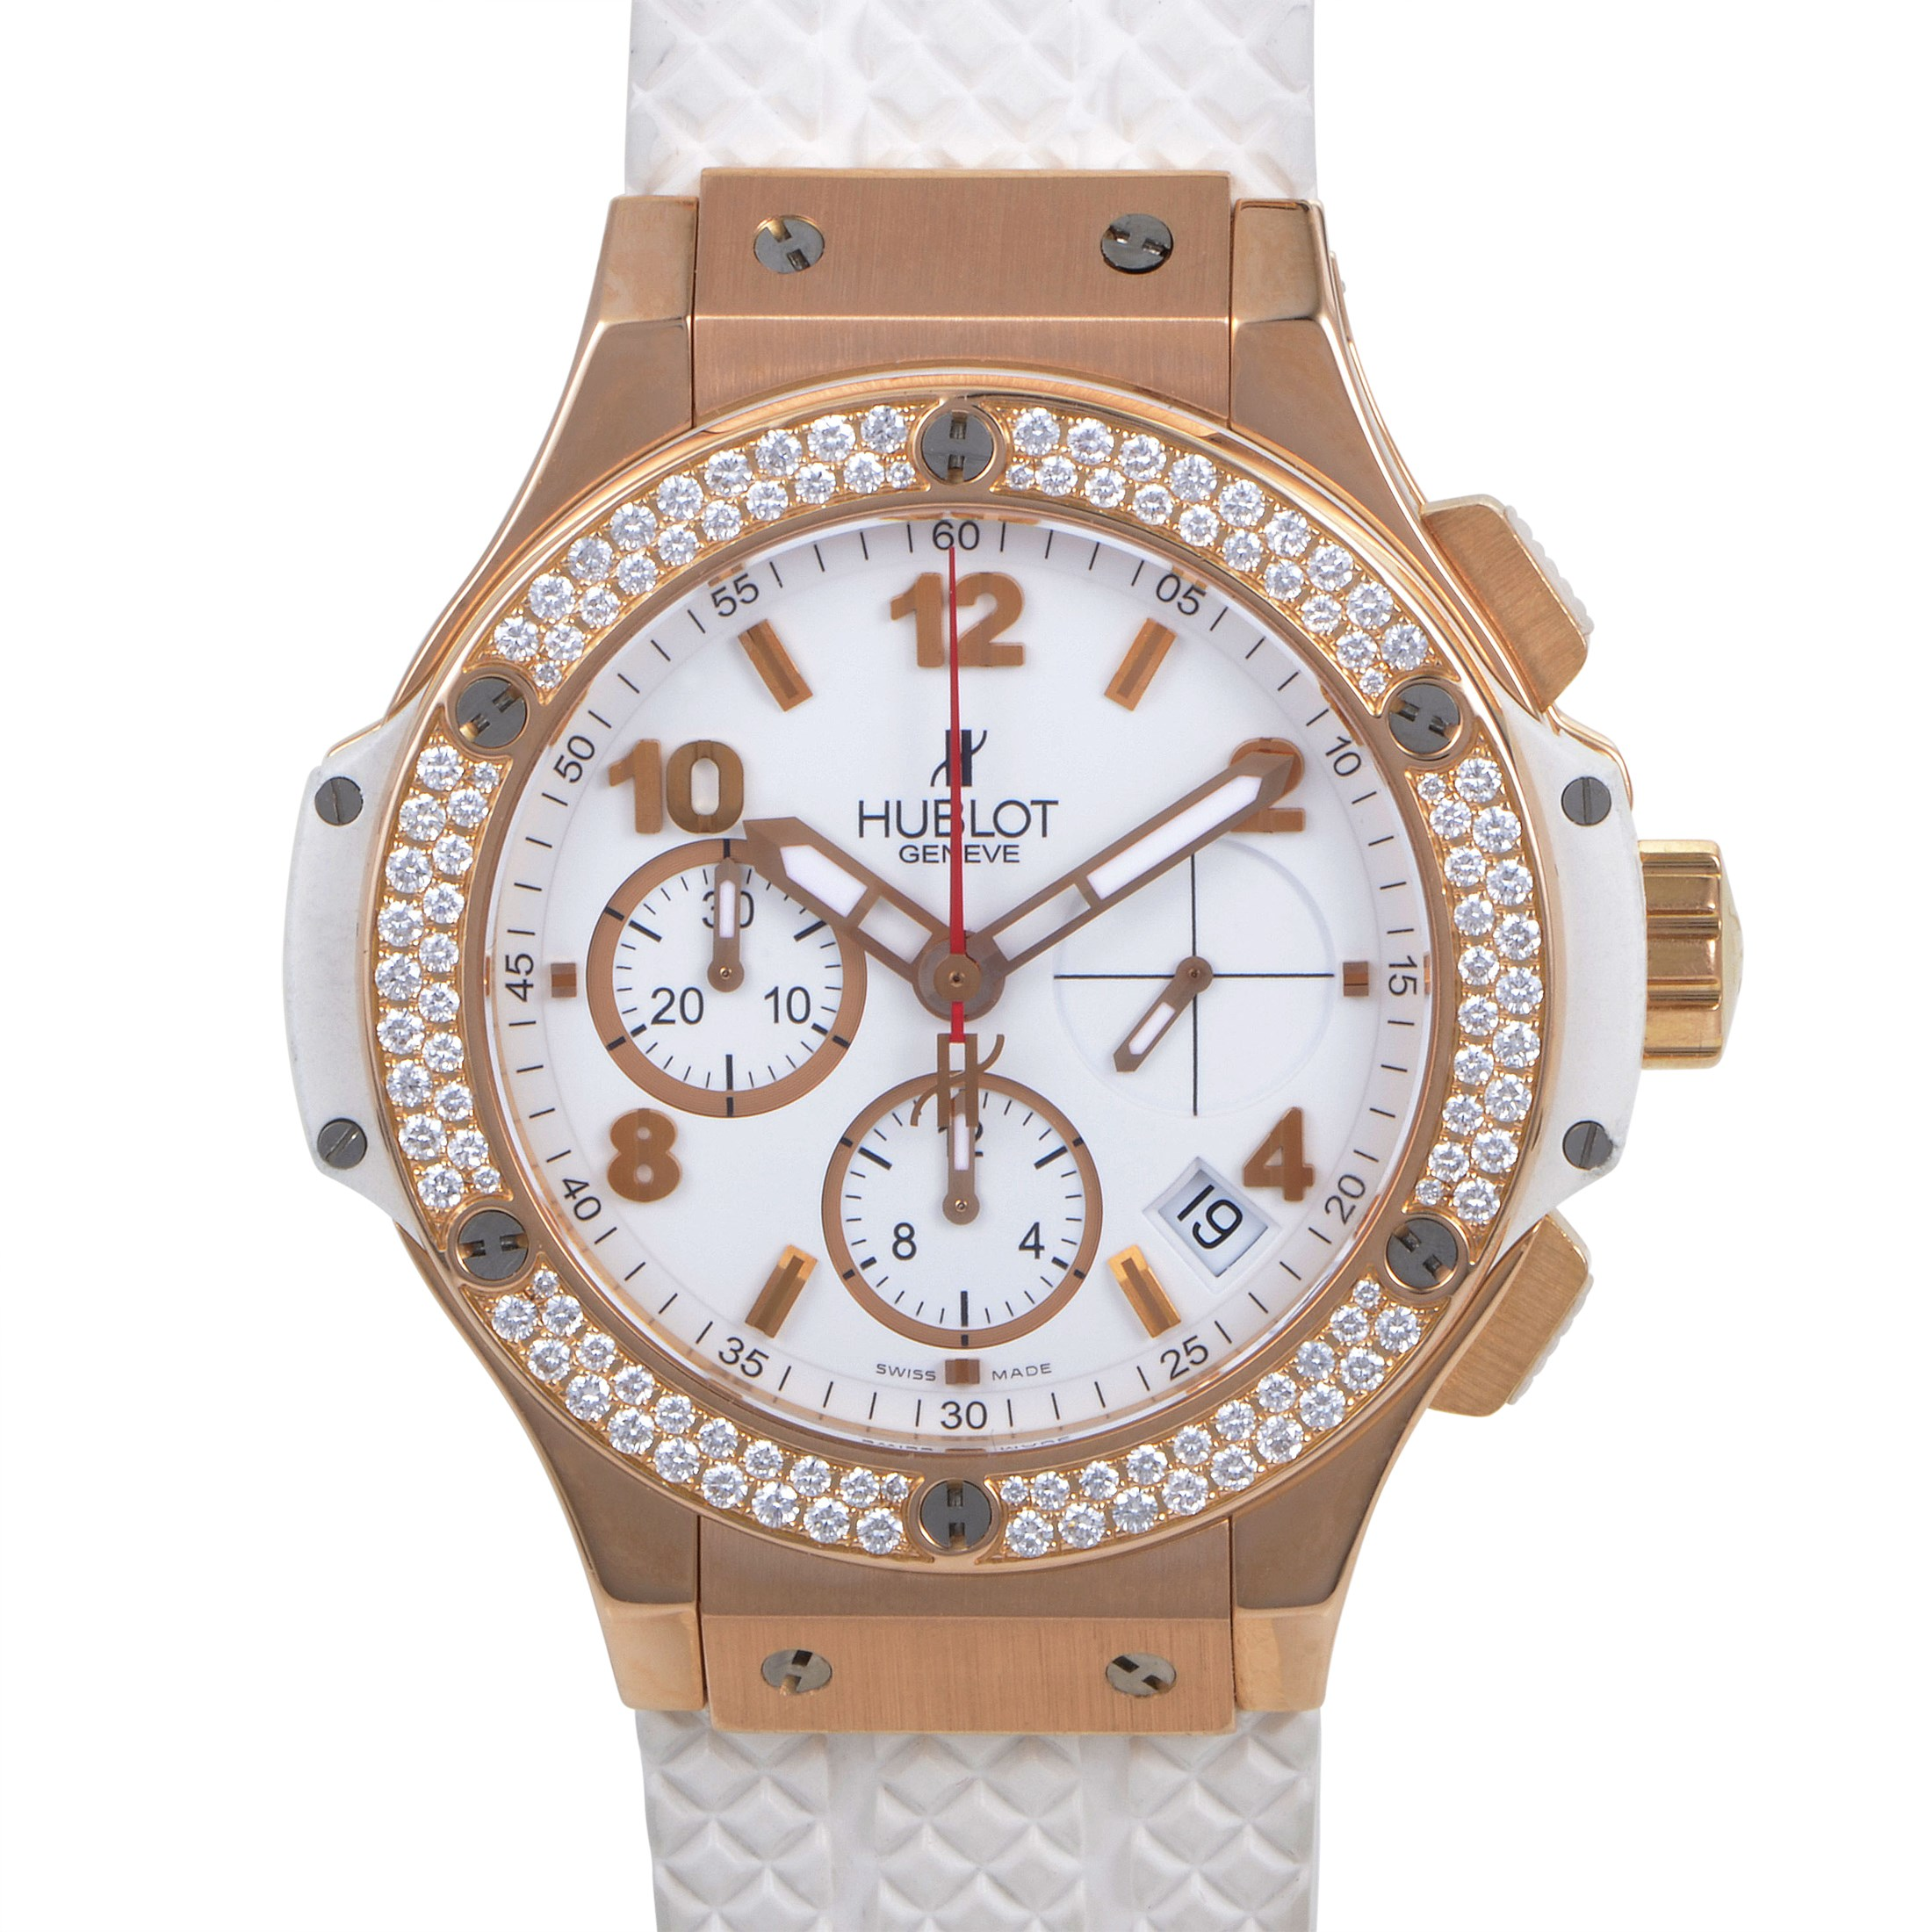 Big Bang Gold White 41mm Automatic Chronograph Watch 341.PE.2010.RW.1104